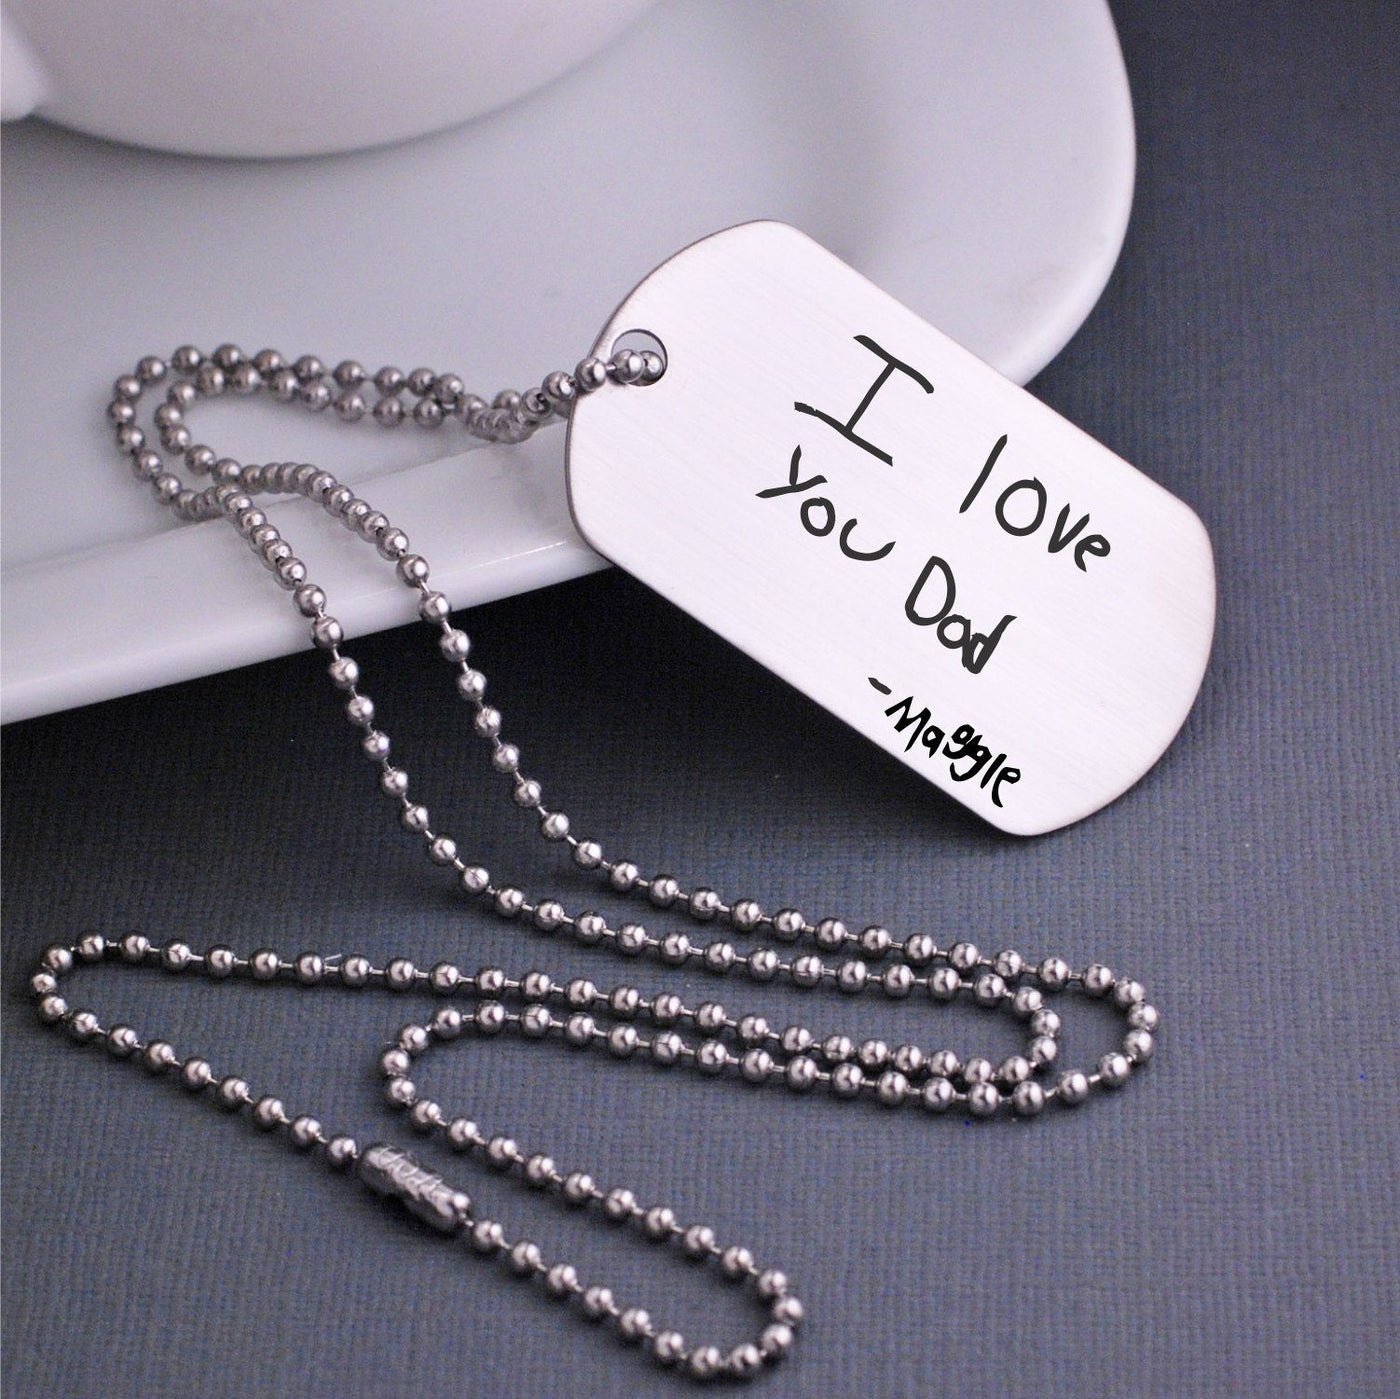 personalized dog tag necklace engraved 'i love you dad, maggie'